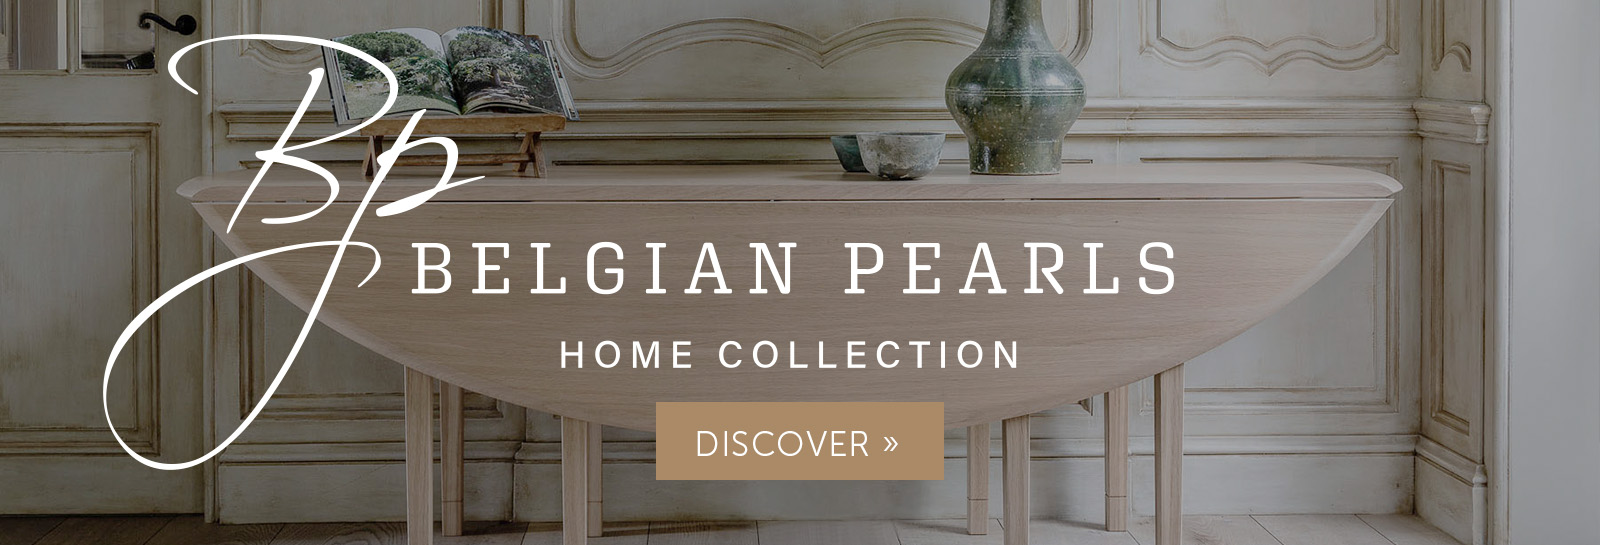 Discover Belgian Pearls Home Collection